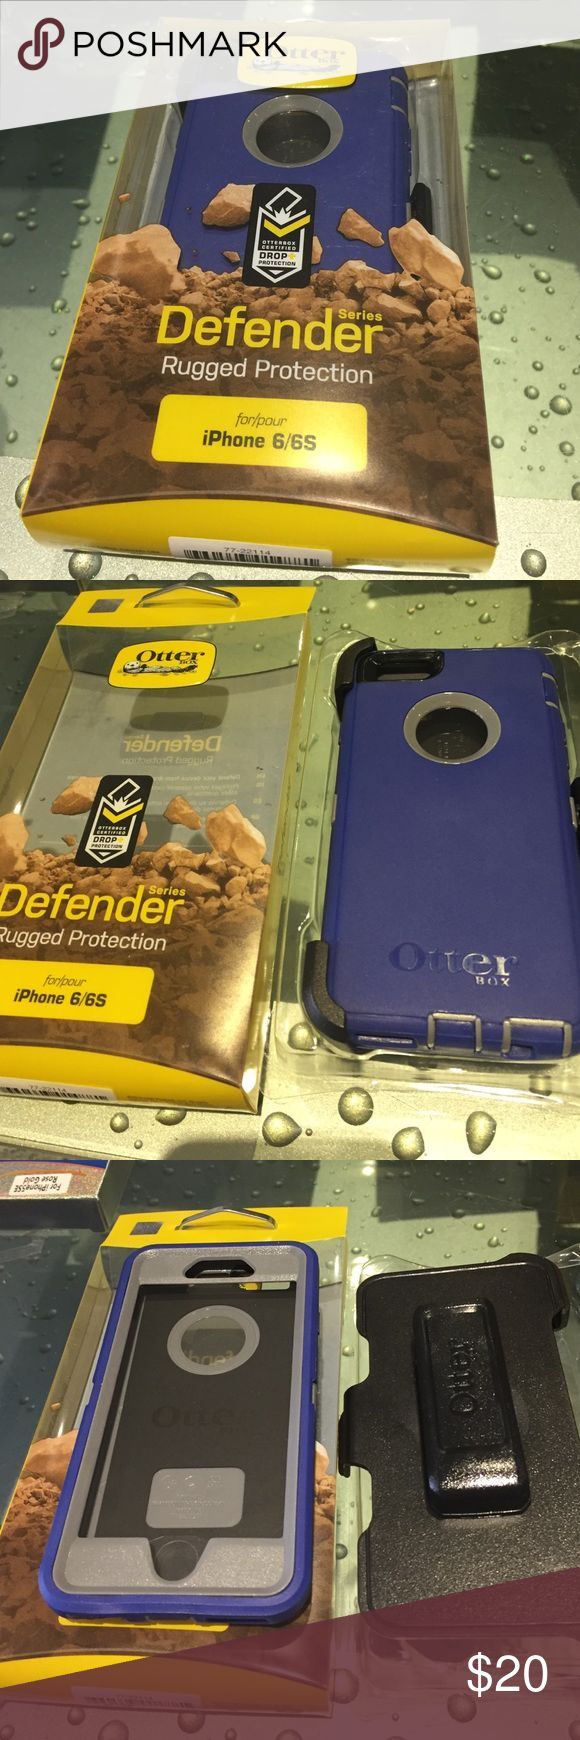 Otterbox defender case for iPhone 6/6s Brand new Otterbox defender case for iPhone 6/6s in retail package OtterBox Accessories Phone Cases